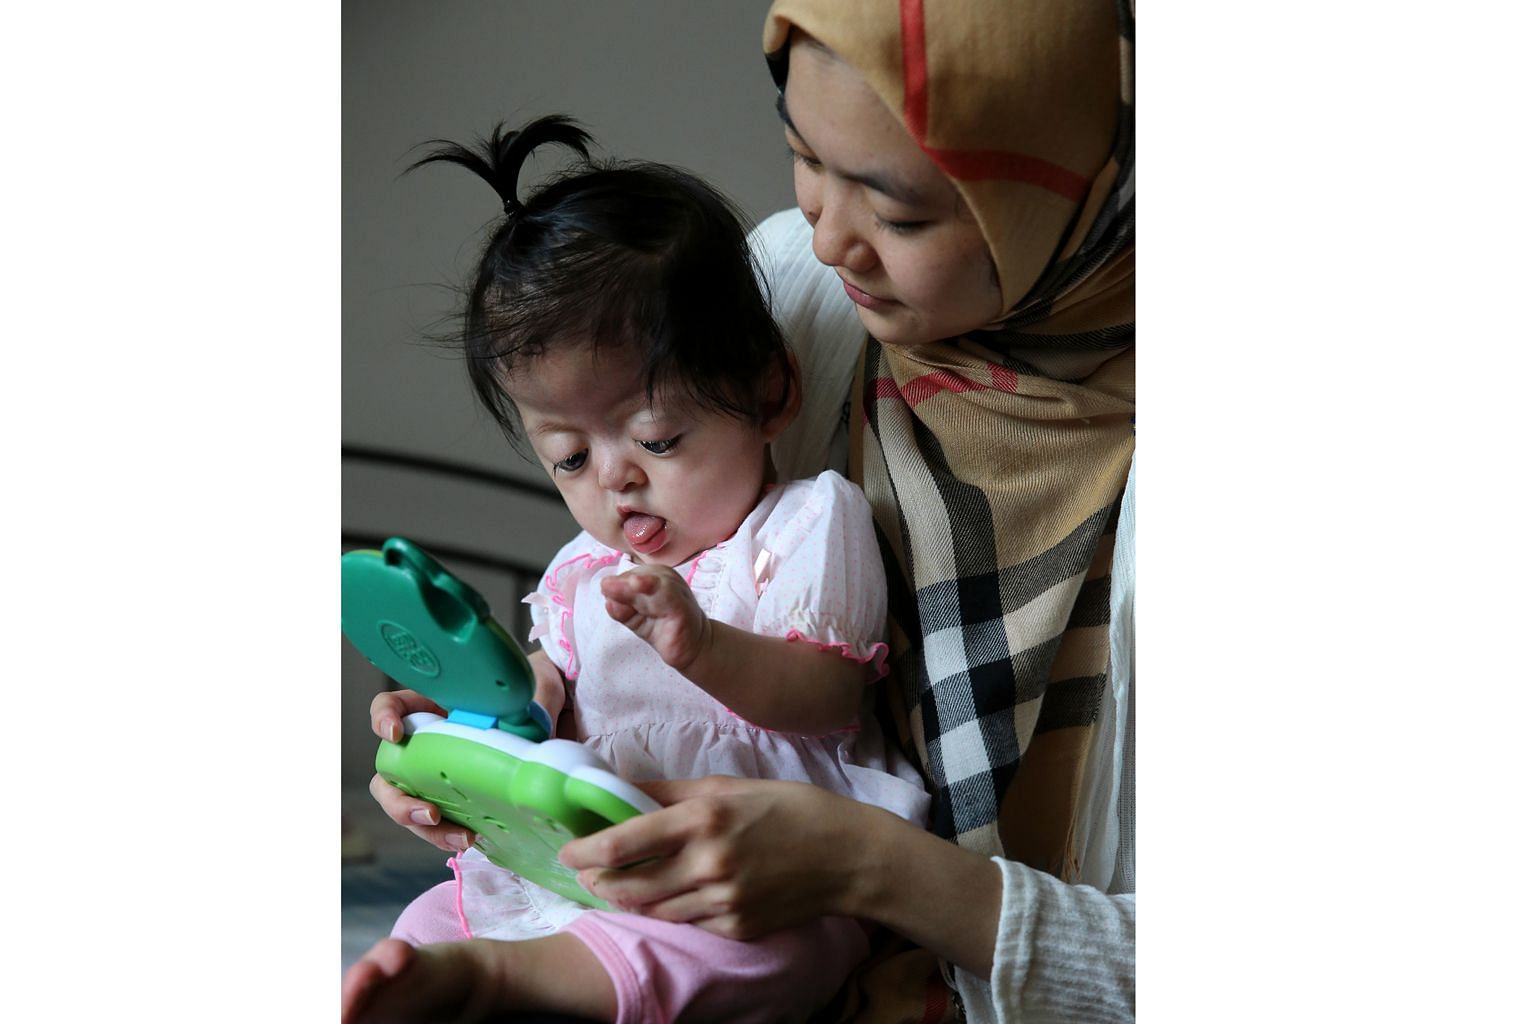 Madam Duong Thi Hai Nhi with her baby daughter, who was born with Apert syndrome - a genetic disorder where the skull does not grow normally and the fingers are fused together.